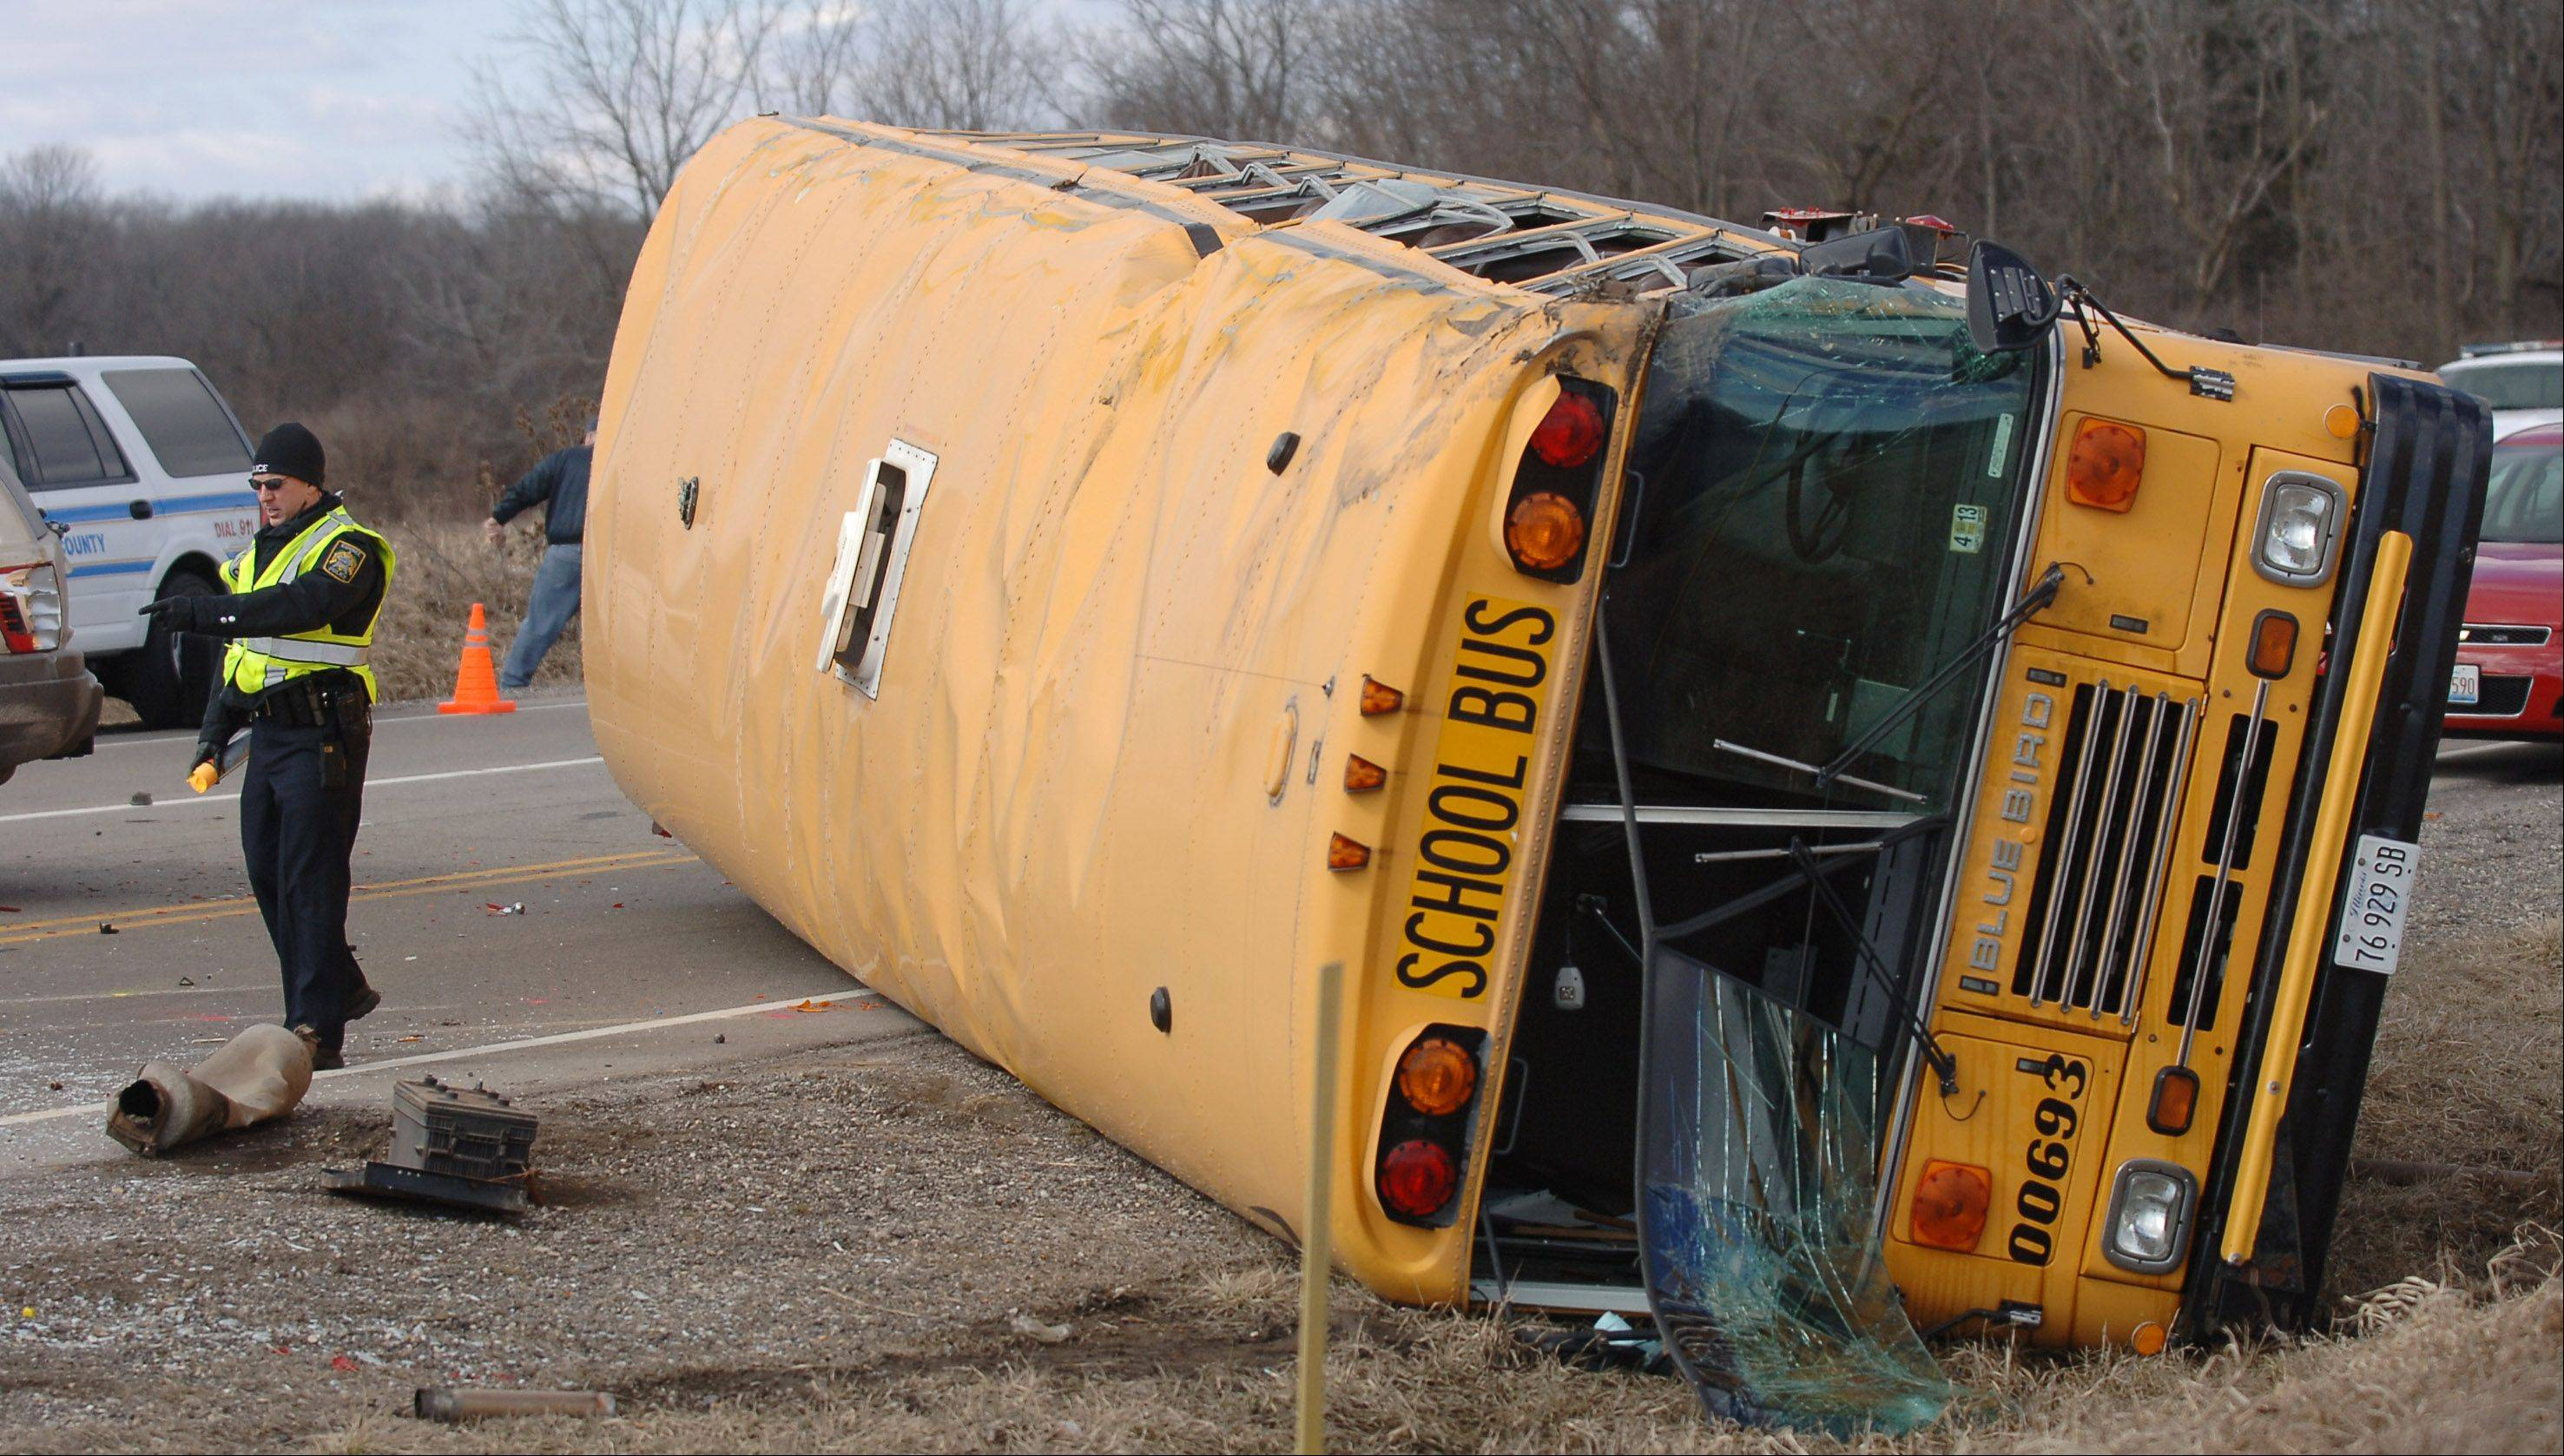 Officials investigate a fatal crash involving two vehicles and a school bus Friday morning at Route 173 and N. Kilbourne Road near Wadsworth. A driver in one of the vehicles was killed, while children on the school bus and occupants of the second vehicle in the crash were injured.